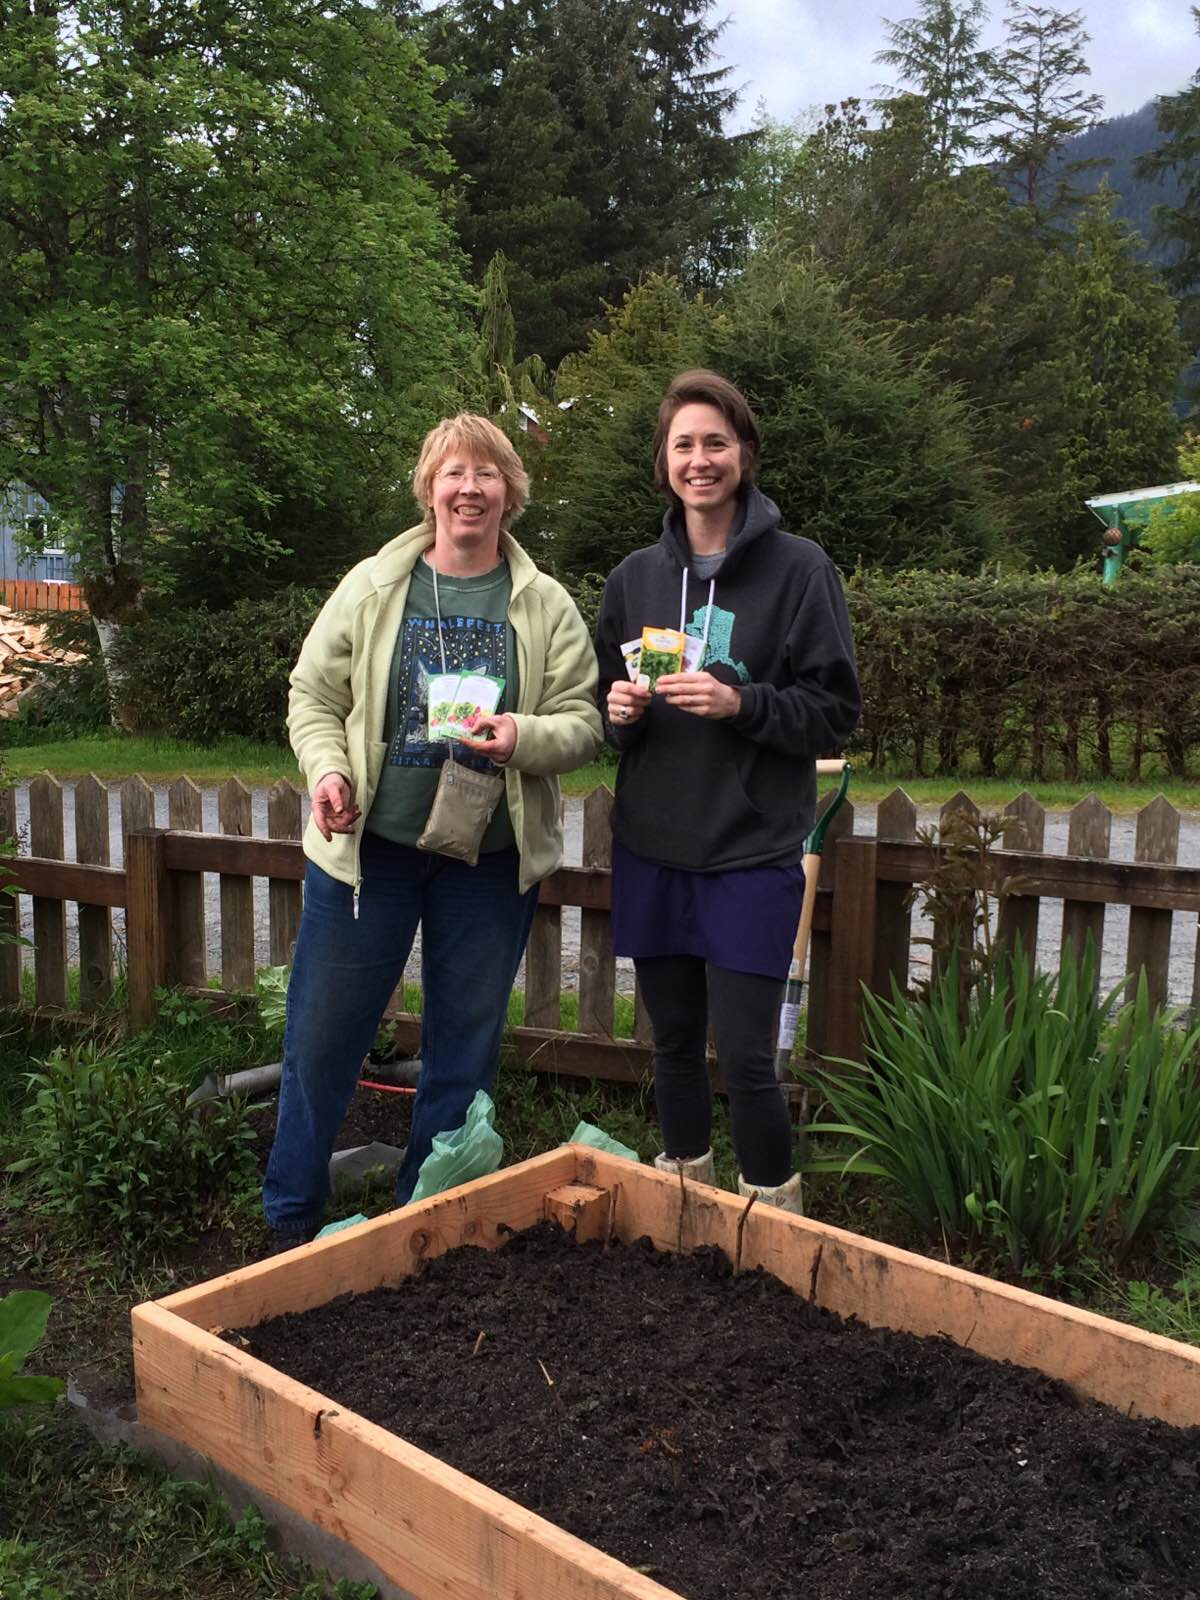 The Final Batch Of Classes (Class Six) For The 2016 Sitka Local Foods  Network Garden Mentor Program Are Being Set For Our Two Participating First Year  ...